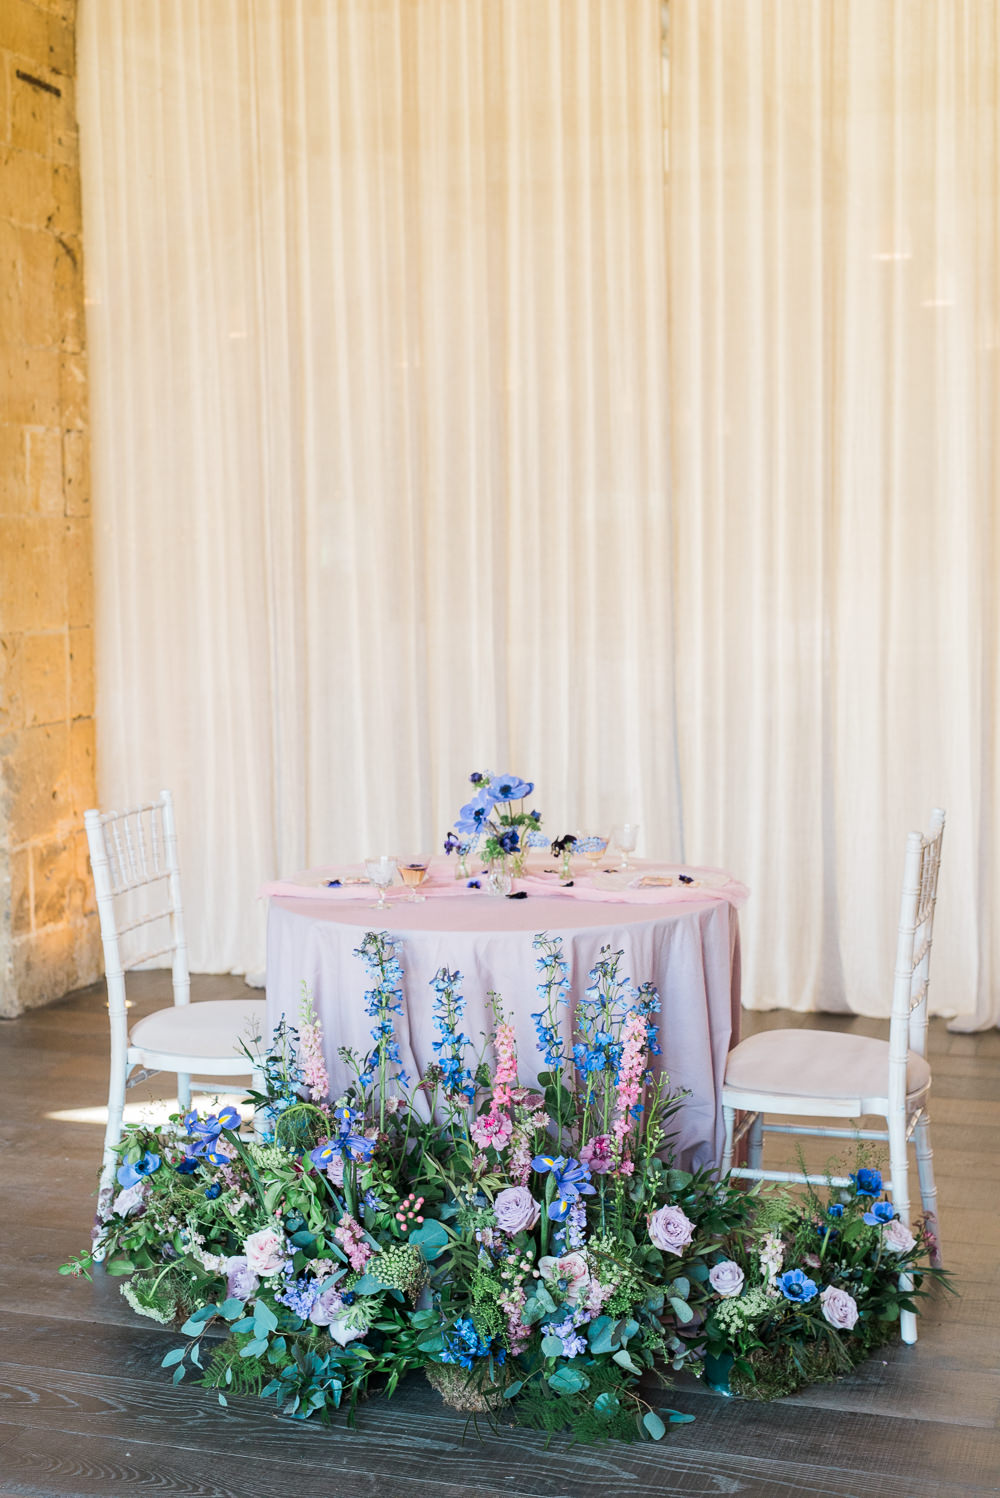 Table Tablescape Purple Lilac Cloth Meadow Arrangement Decor Ultra Violet Wedding Moon Gate Flower Arch Captured by Katrina Photography